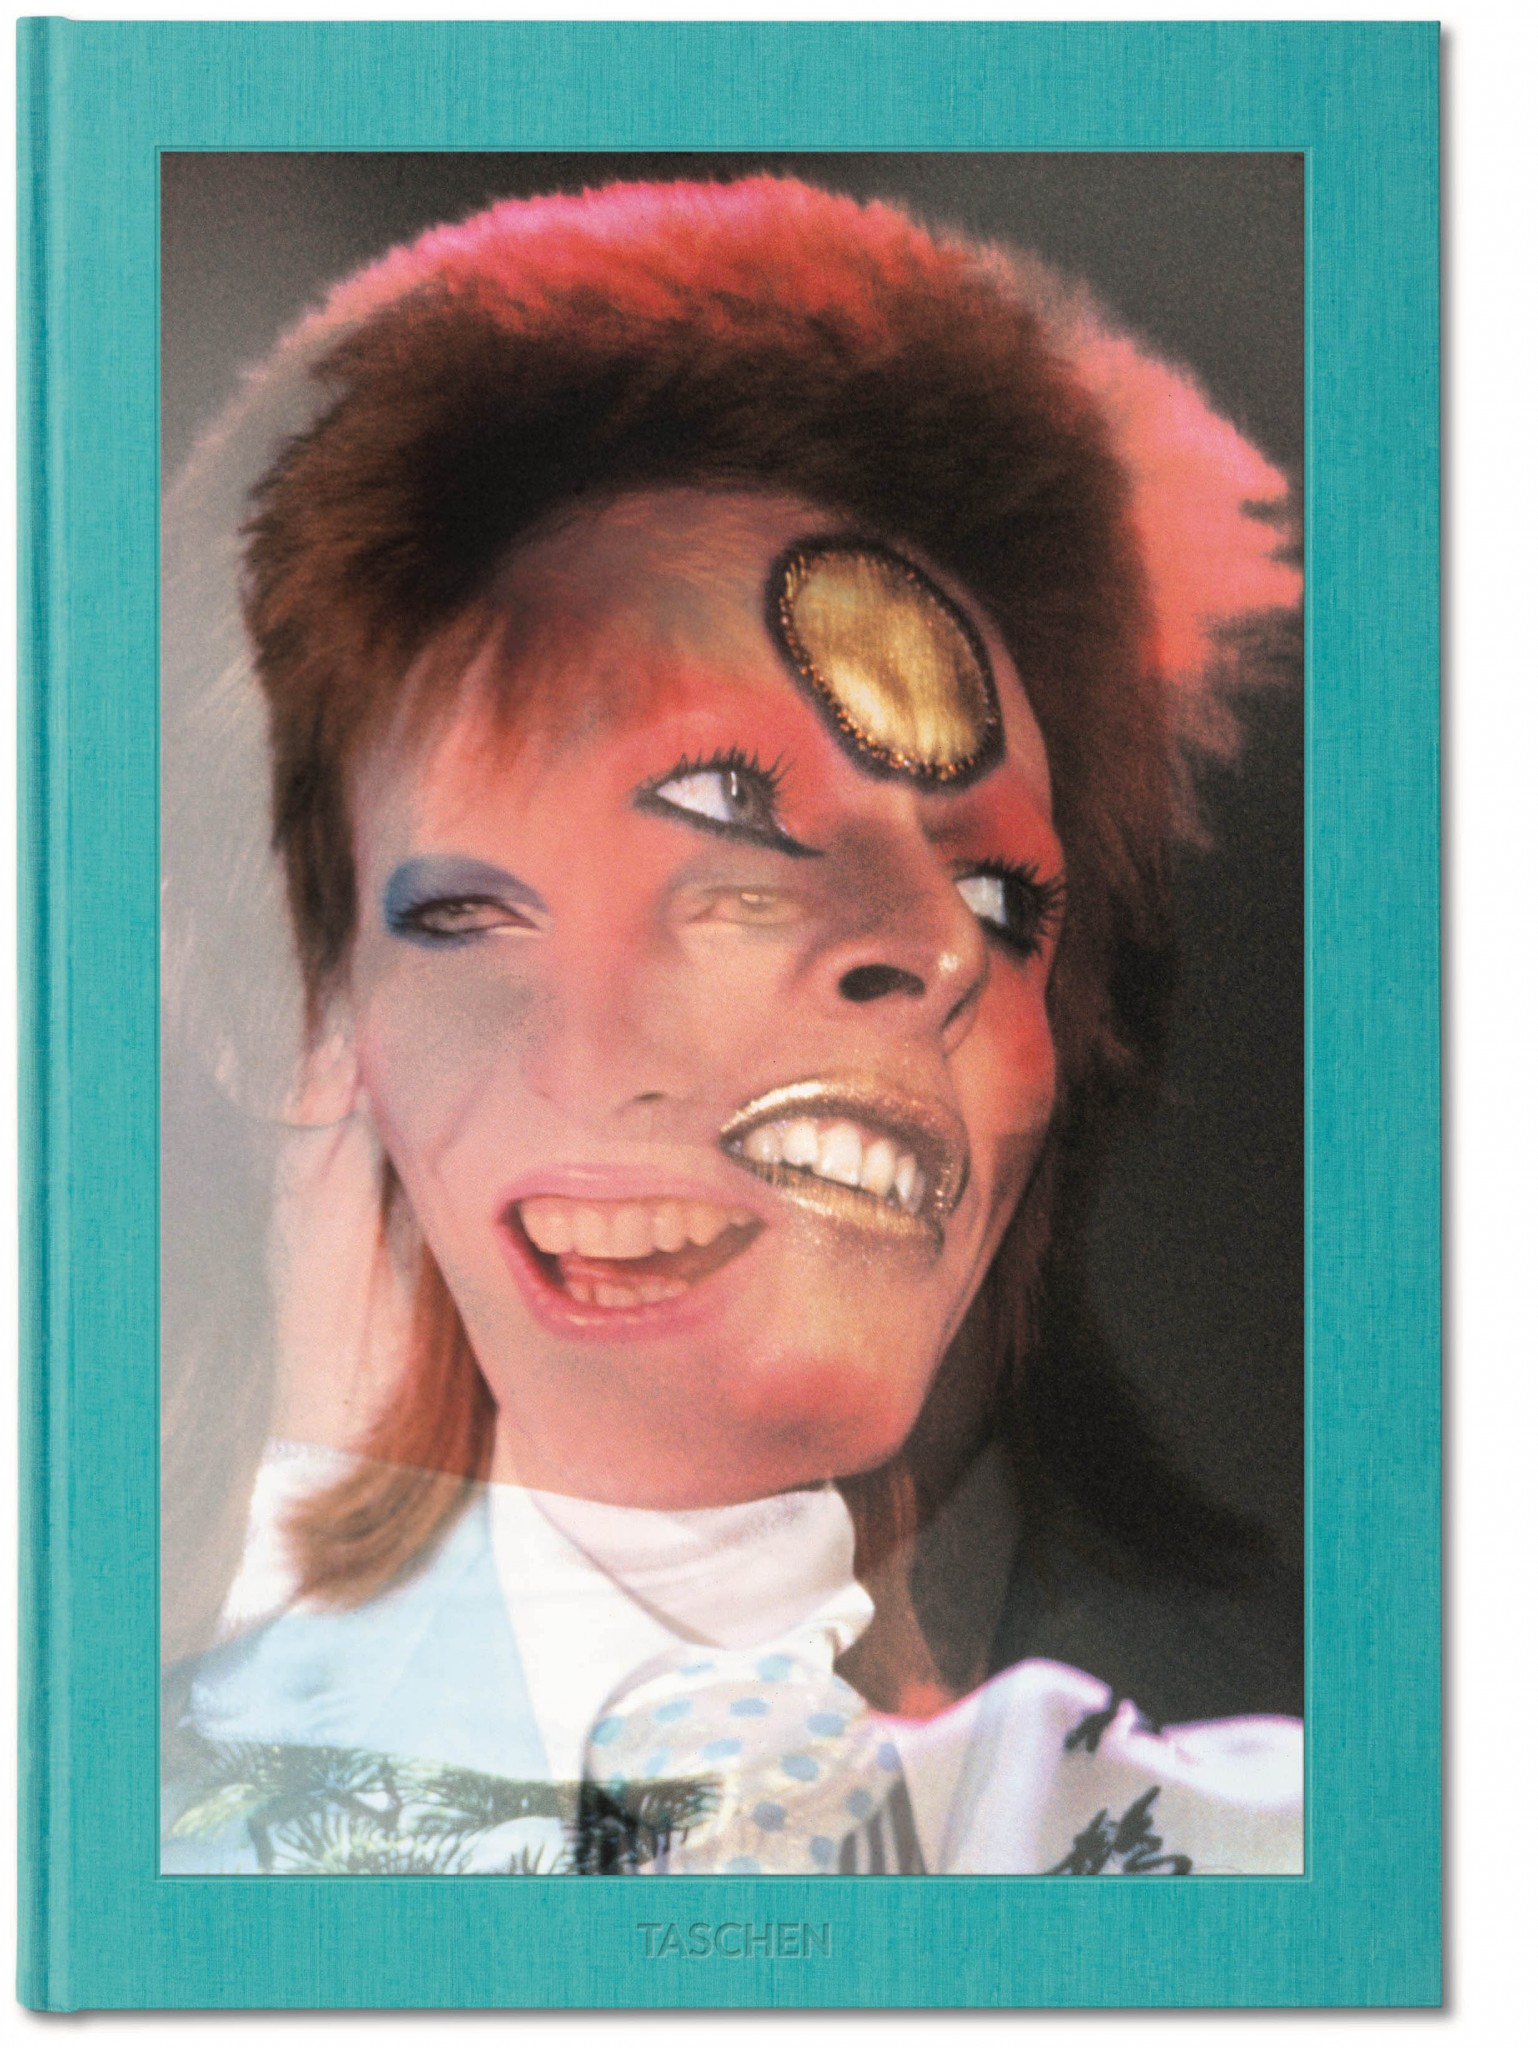 Spiders From Mars man David Bowie on the cover of Mick Rock's new book in Loade